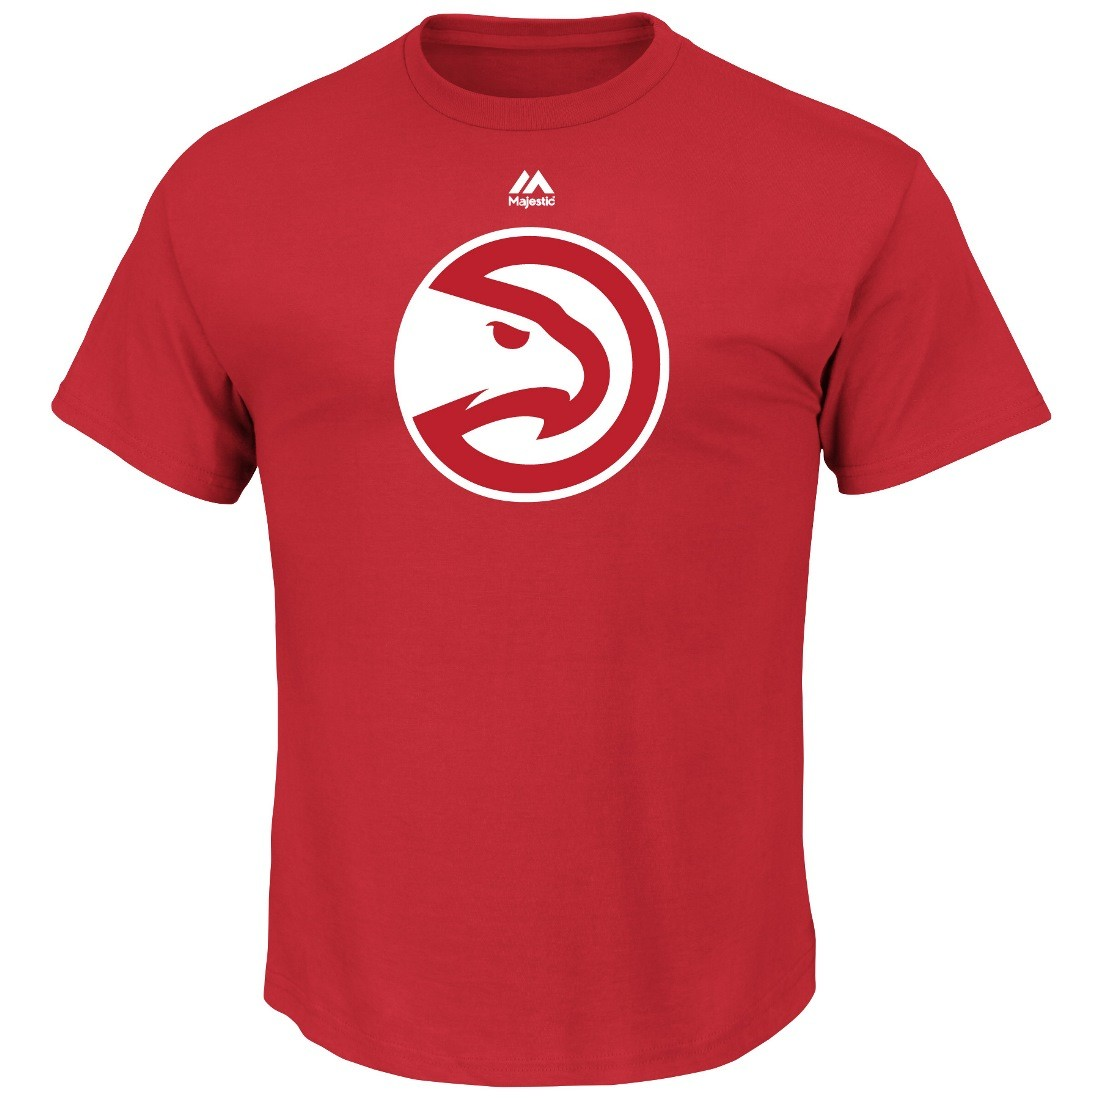 945221c8bf6cd Details about Atlanta Hawks Majestic NBA